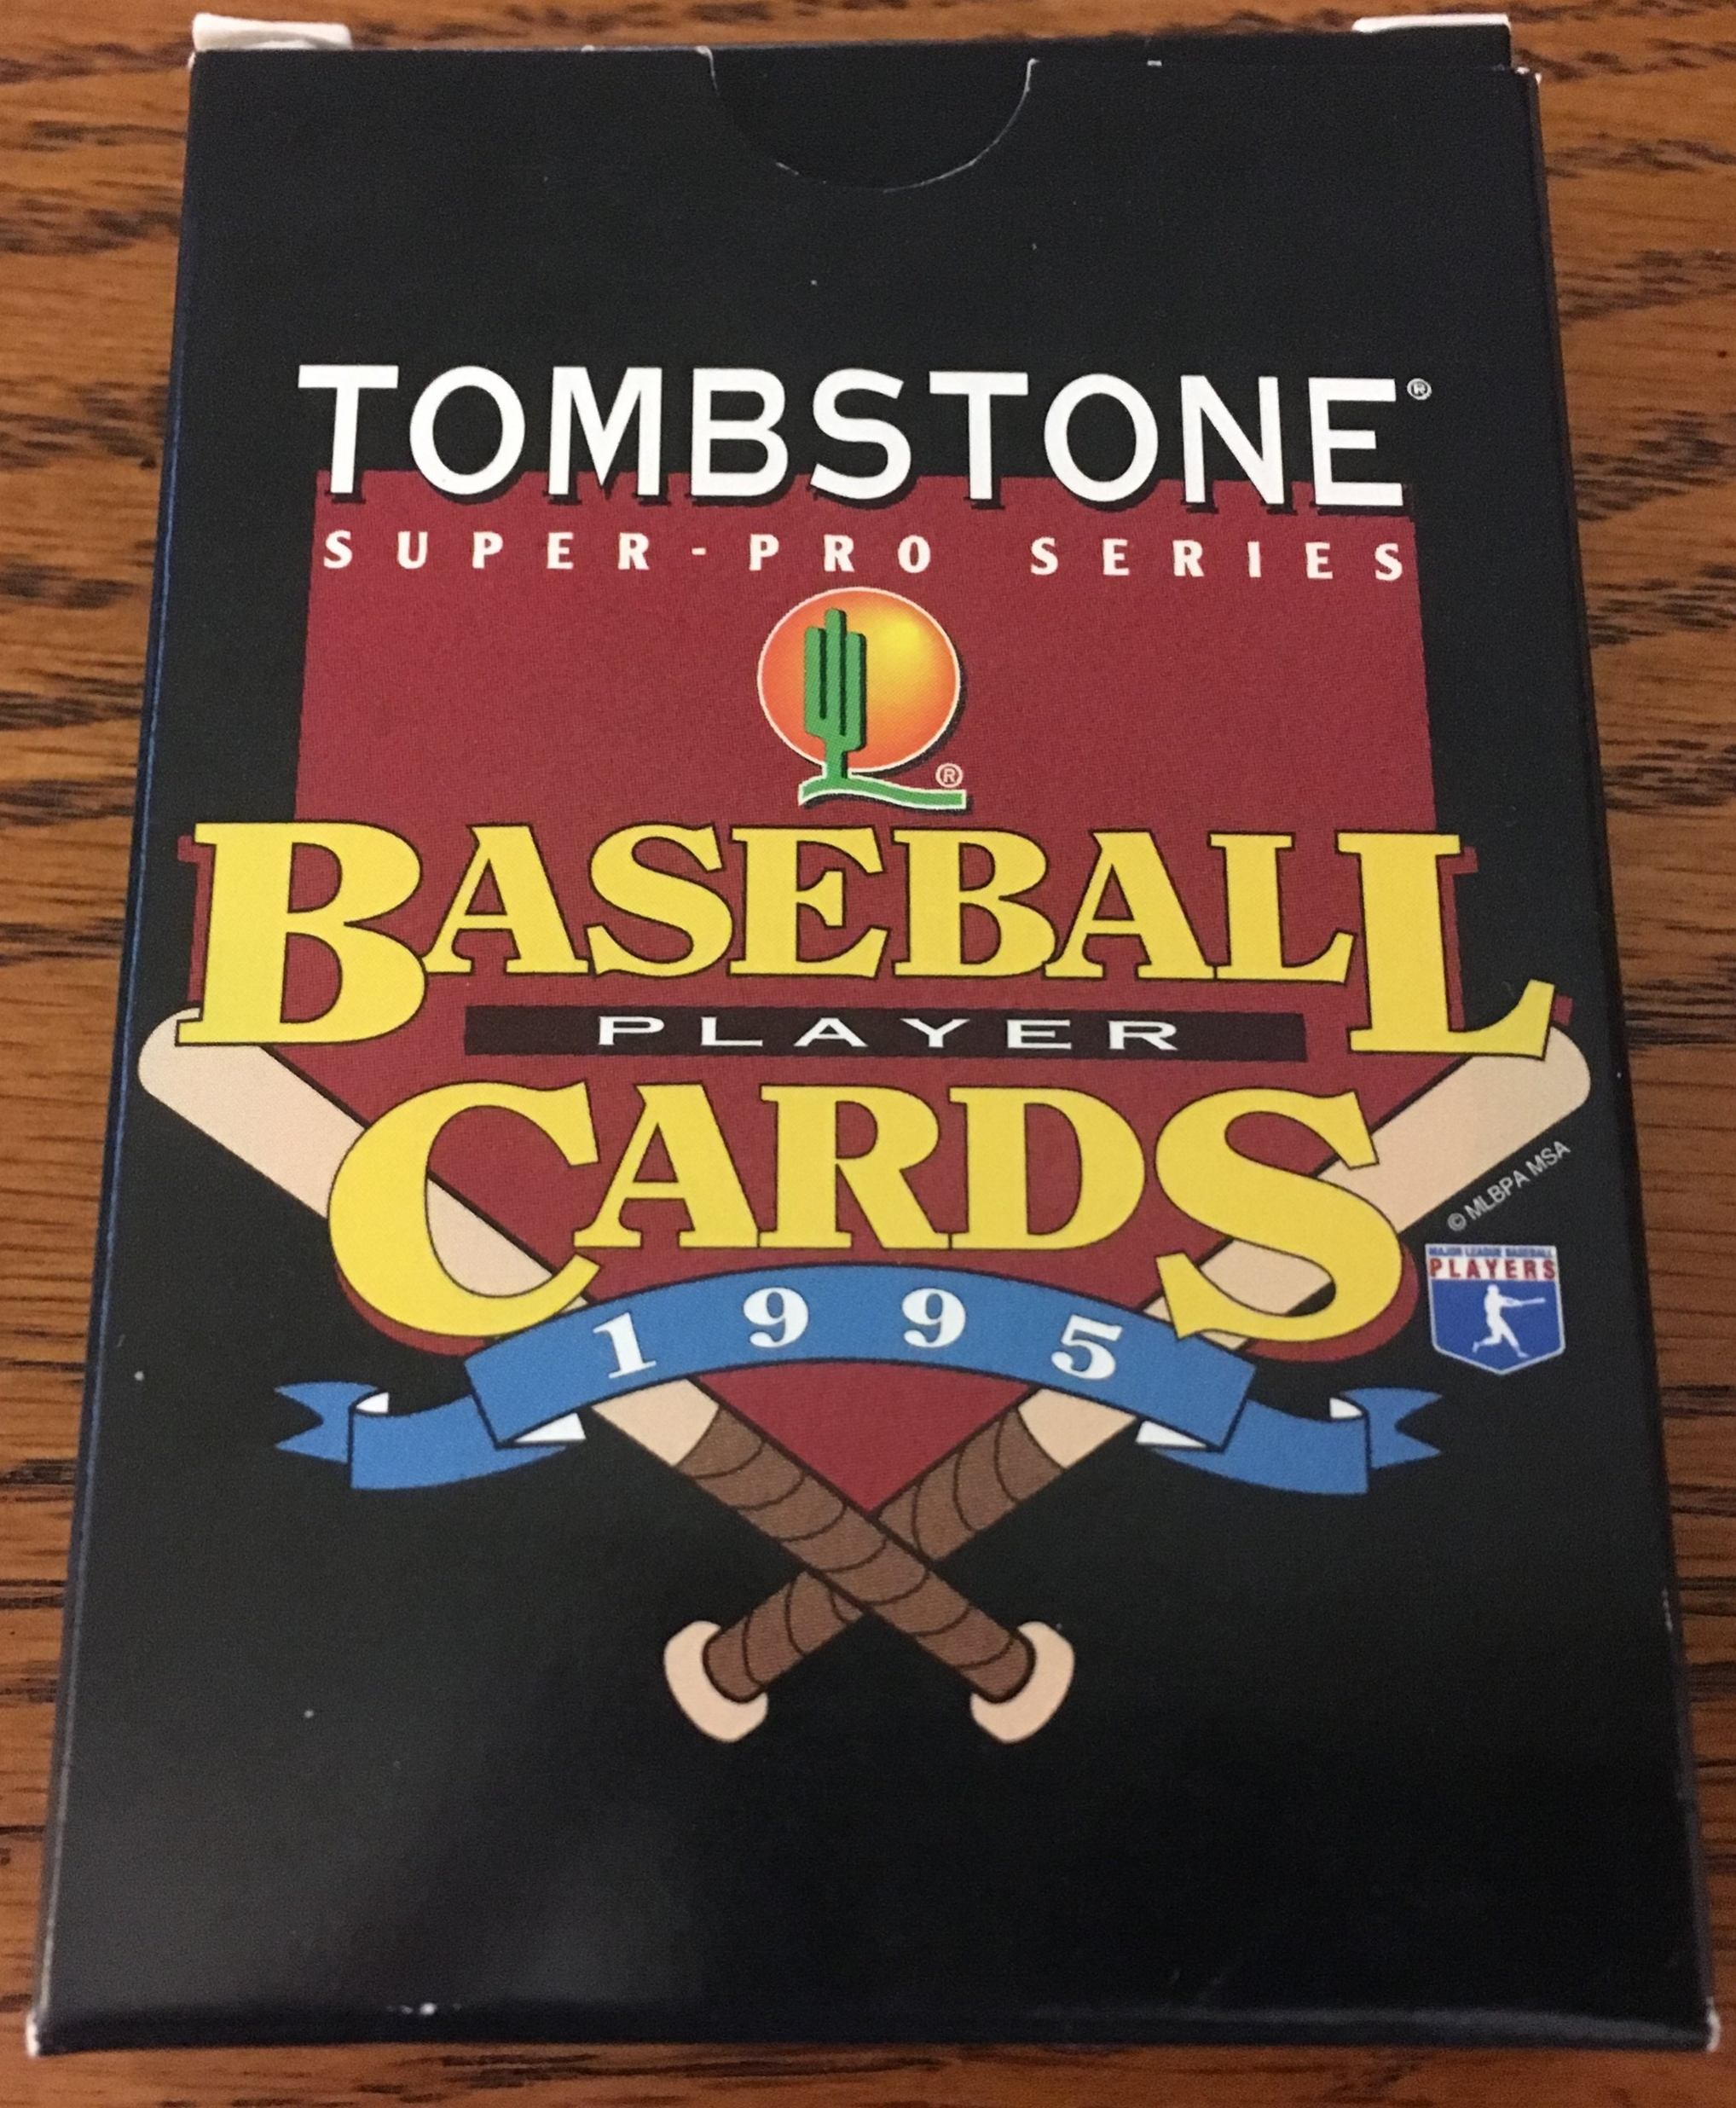 1995-Tombstone-Pizza-Cards.JPG